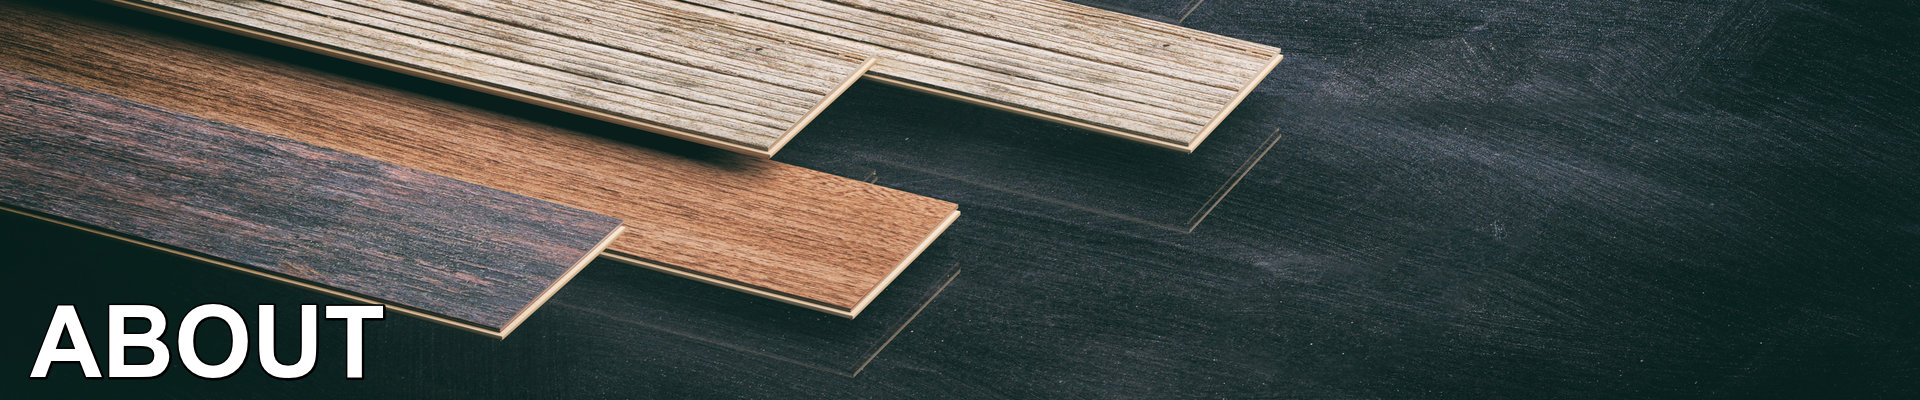 about j and j hardwood flooring